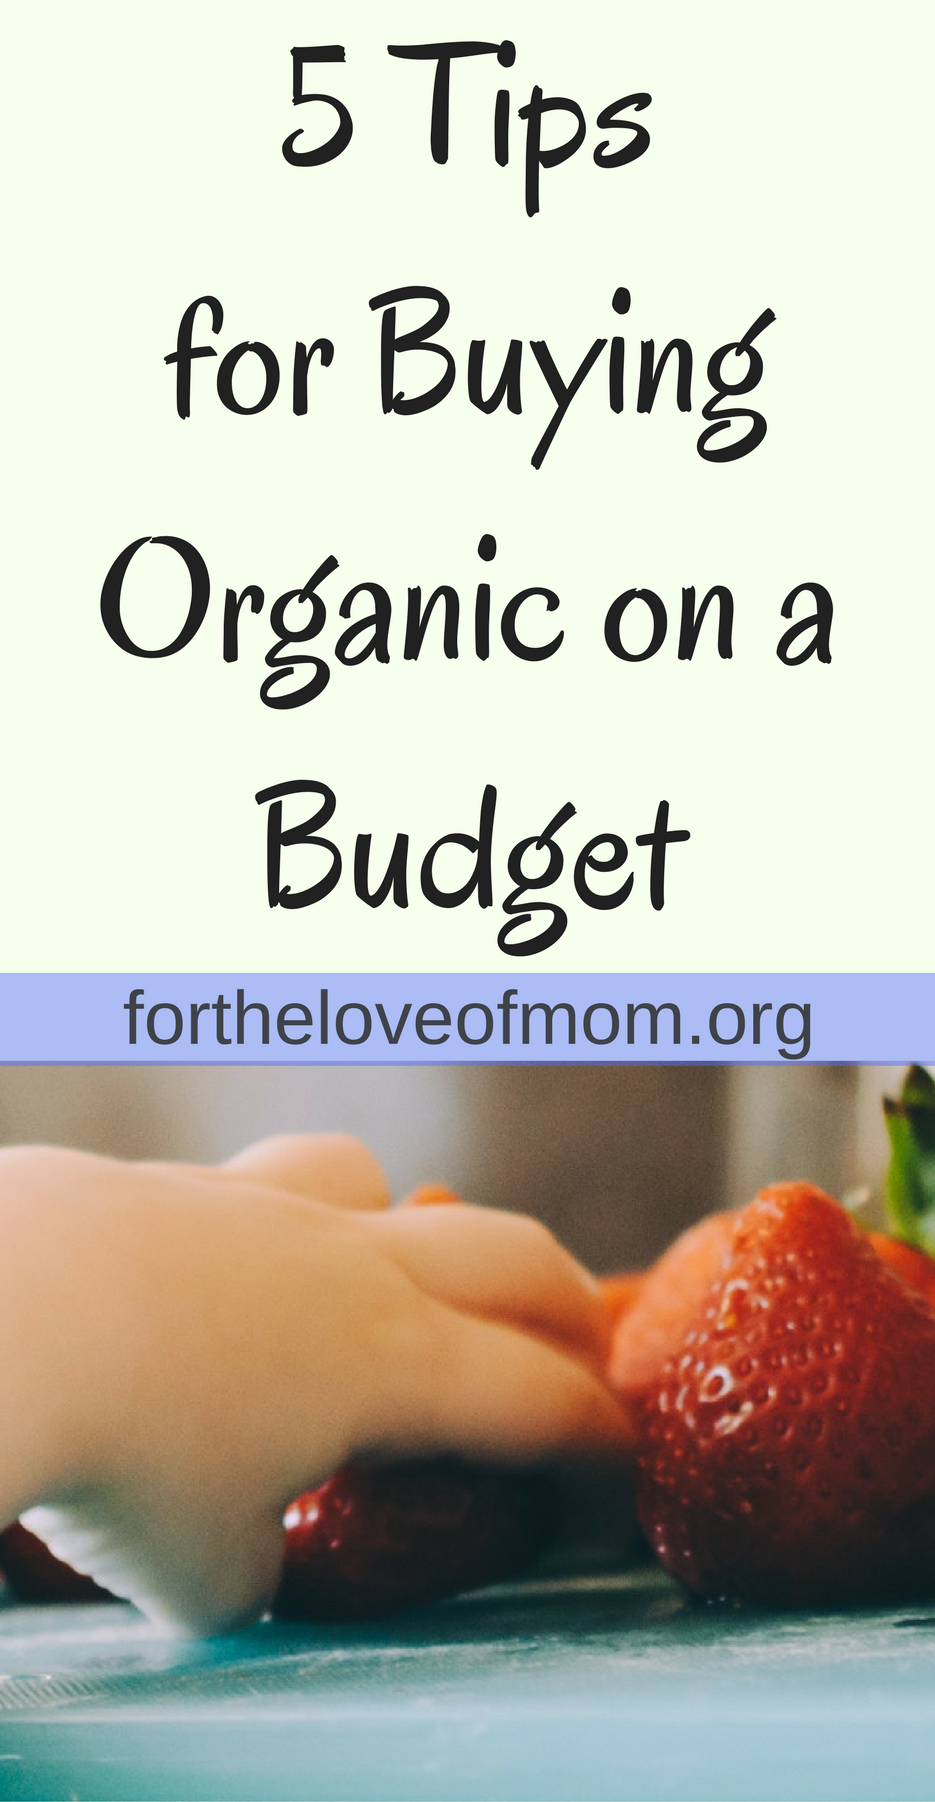 5 Tips for Buying Organic on a Budget (1).png